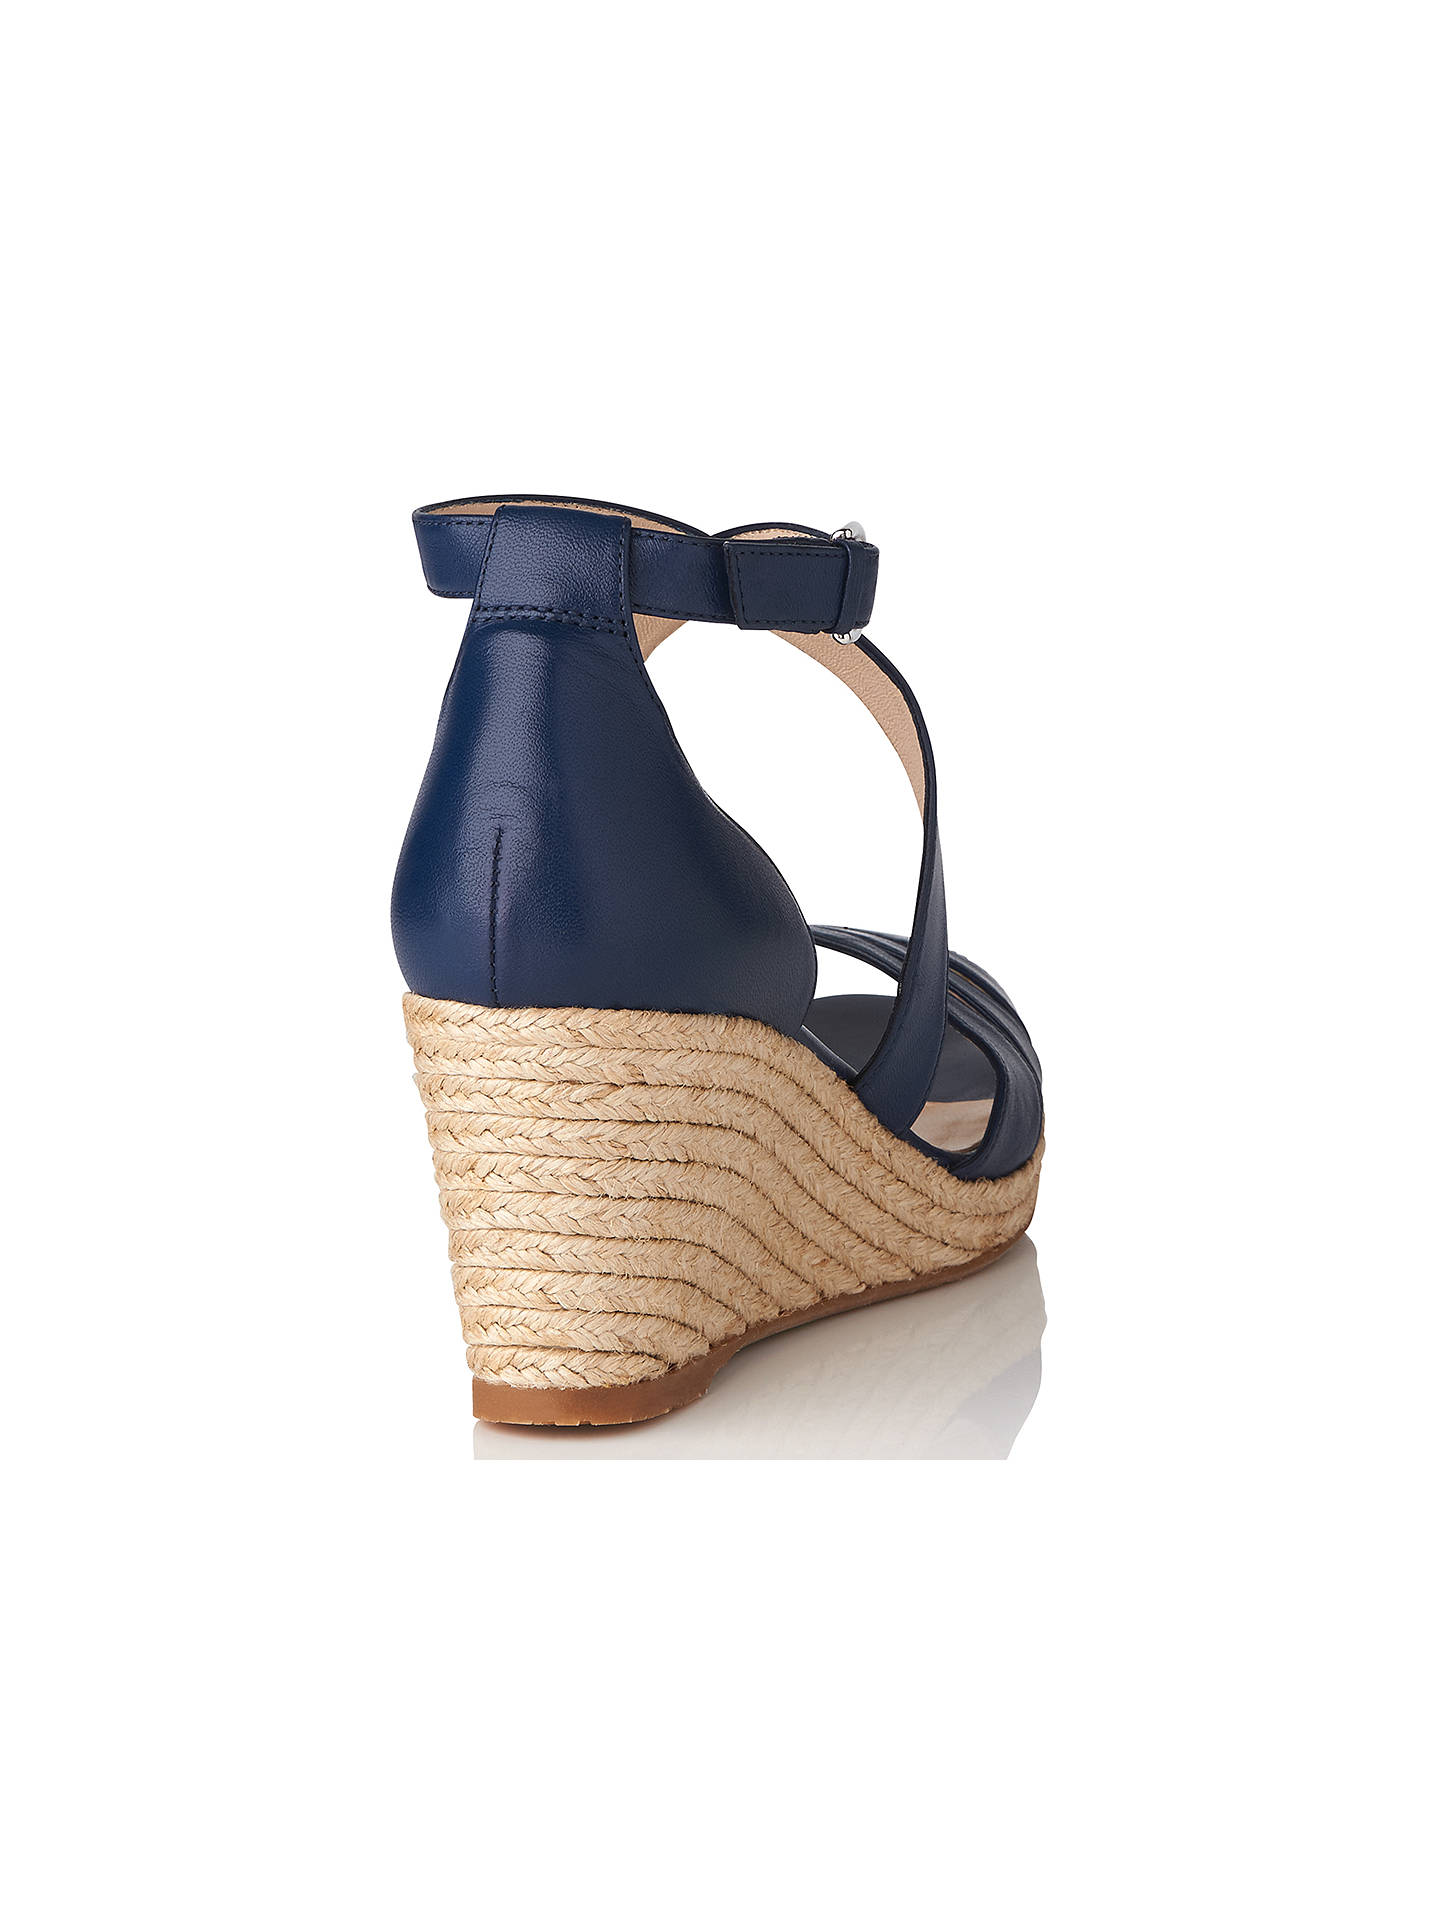 09f96836dd4 L.K. Bennett Priya Wedge Heeled Sandals at John Lewis   Partners